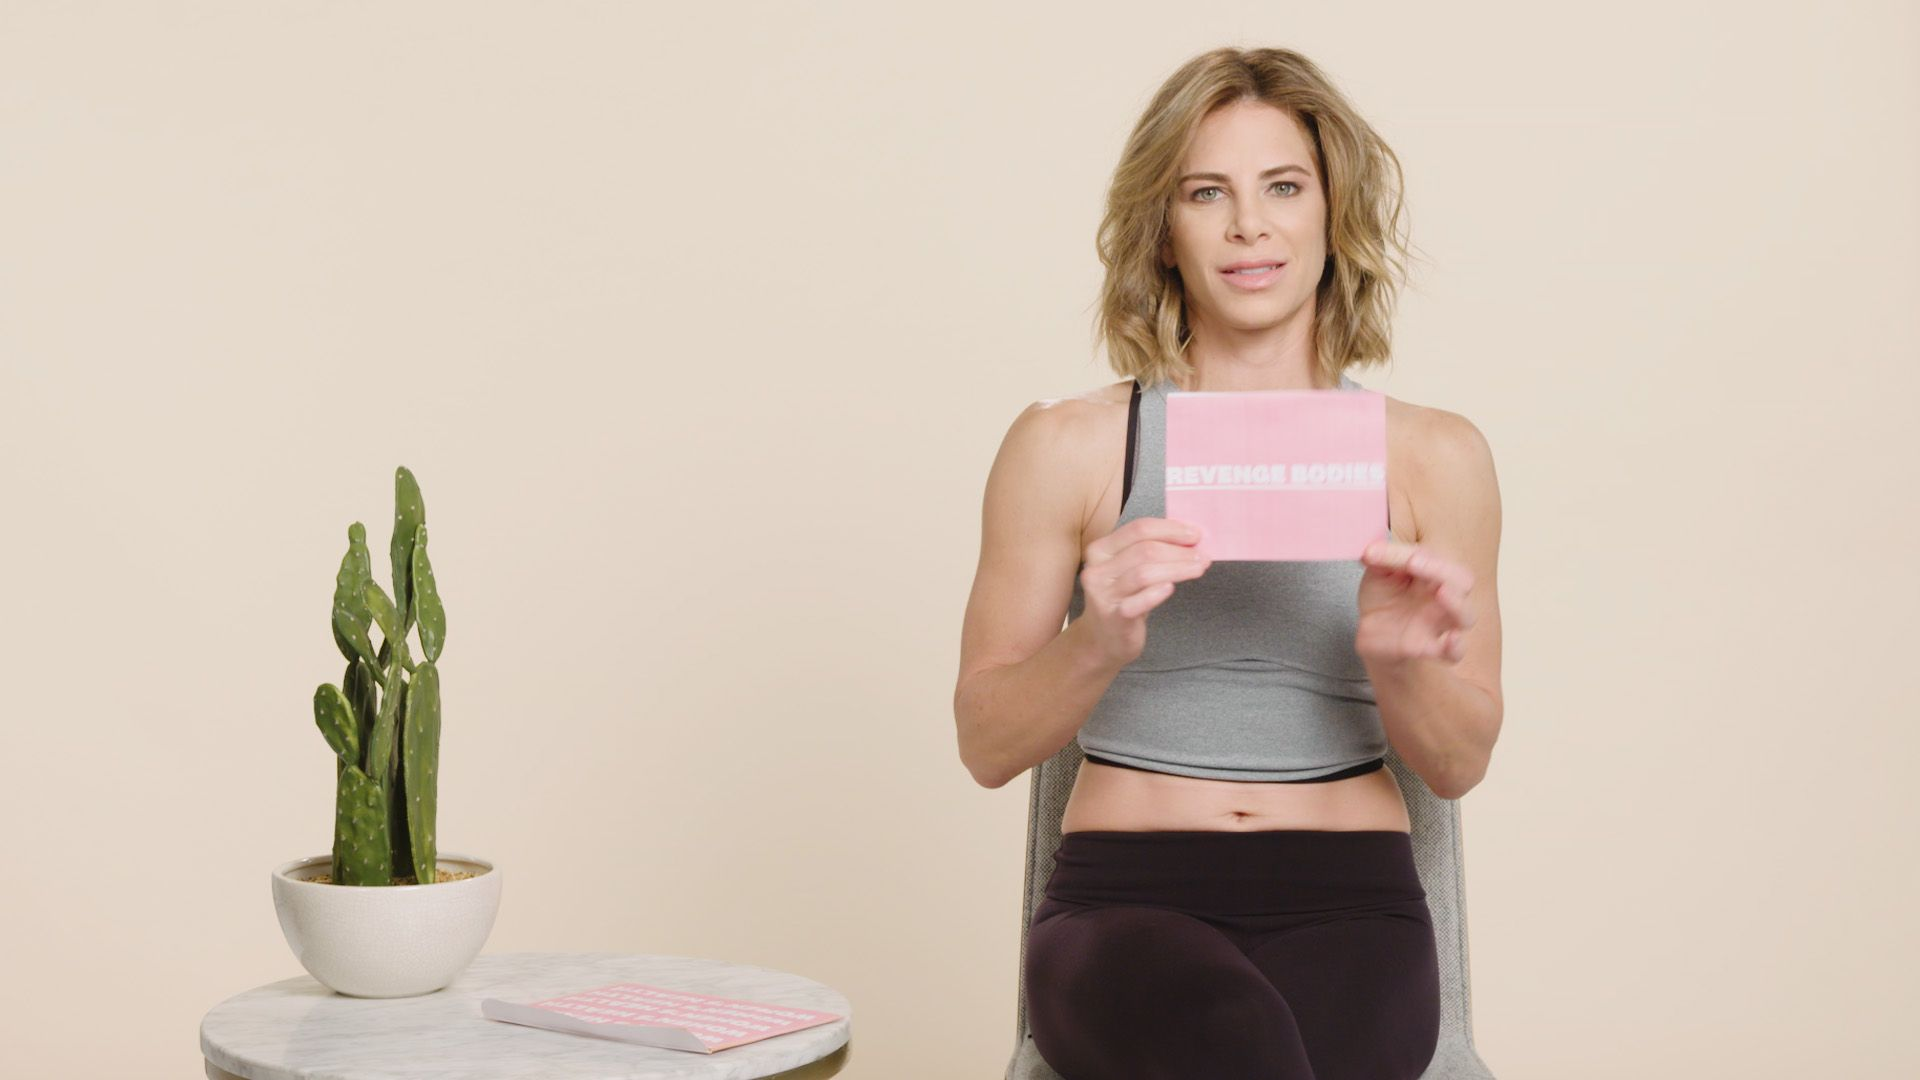 Jillian Michaels Just Posted a Video Challenging Al Roker to a Keto Diet Debate